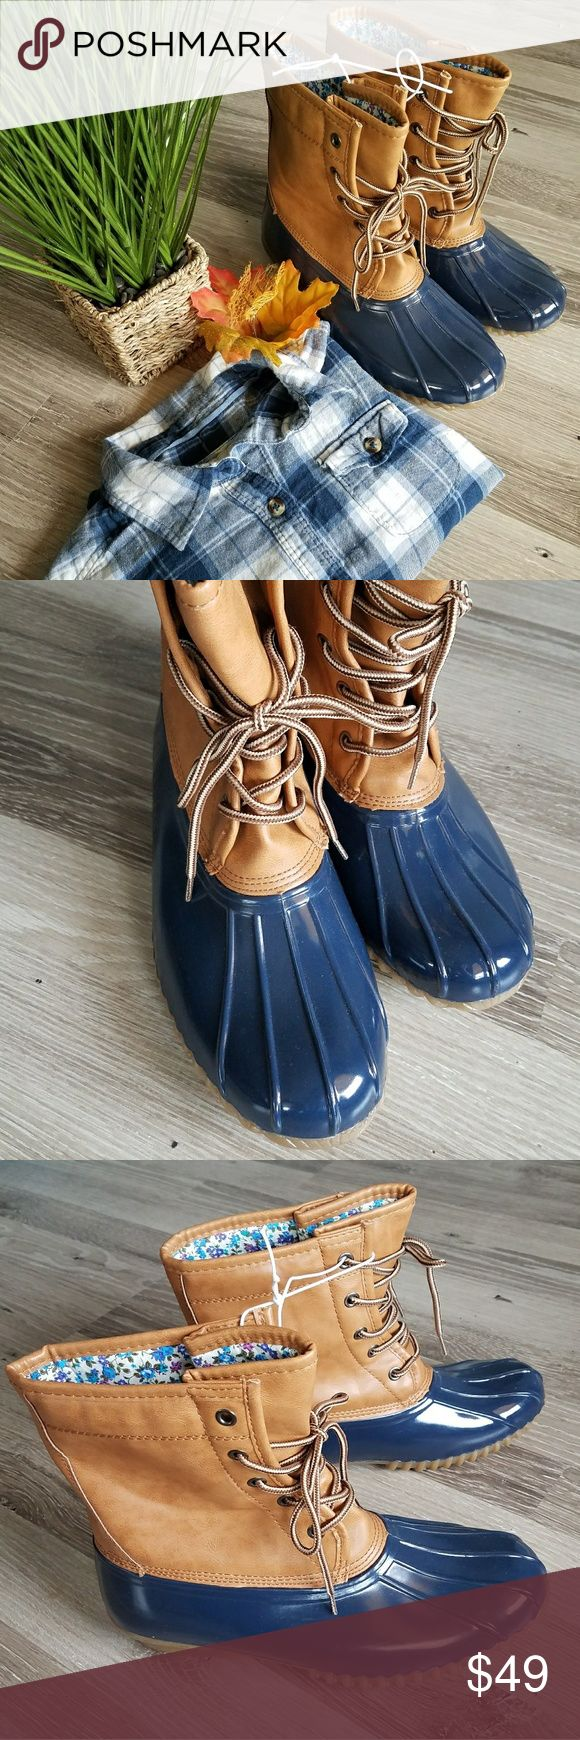 🍂Navy Duck boots! ***Price at it's lowest, no offers plz***  Beautiful duck boots for this fall season! A MUST HAVE in every wardrobe! Navy blue rubber toes with a tan leather and floral print on the inside! Brand New never worn! I have 2 sizes!!  Brand is Sugar. Make offers ladies! Shoes Winter & Rain Boots